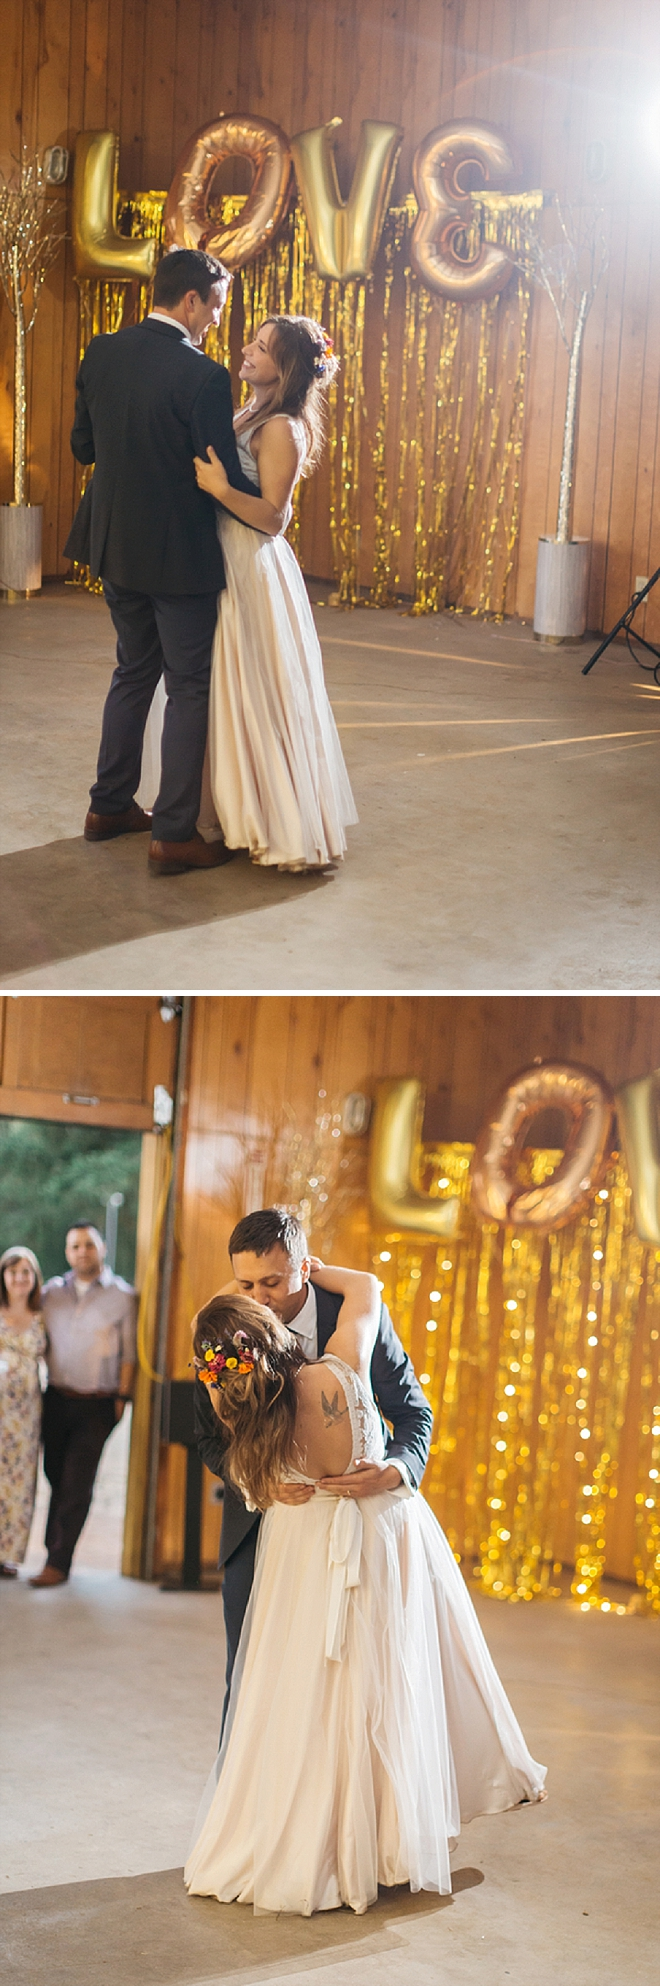 We're loving this first dance as Mr. and Mrs! Check out those love balloons!